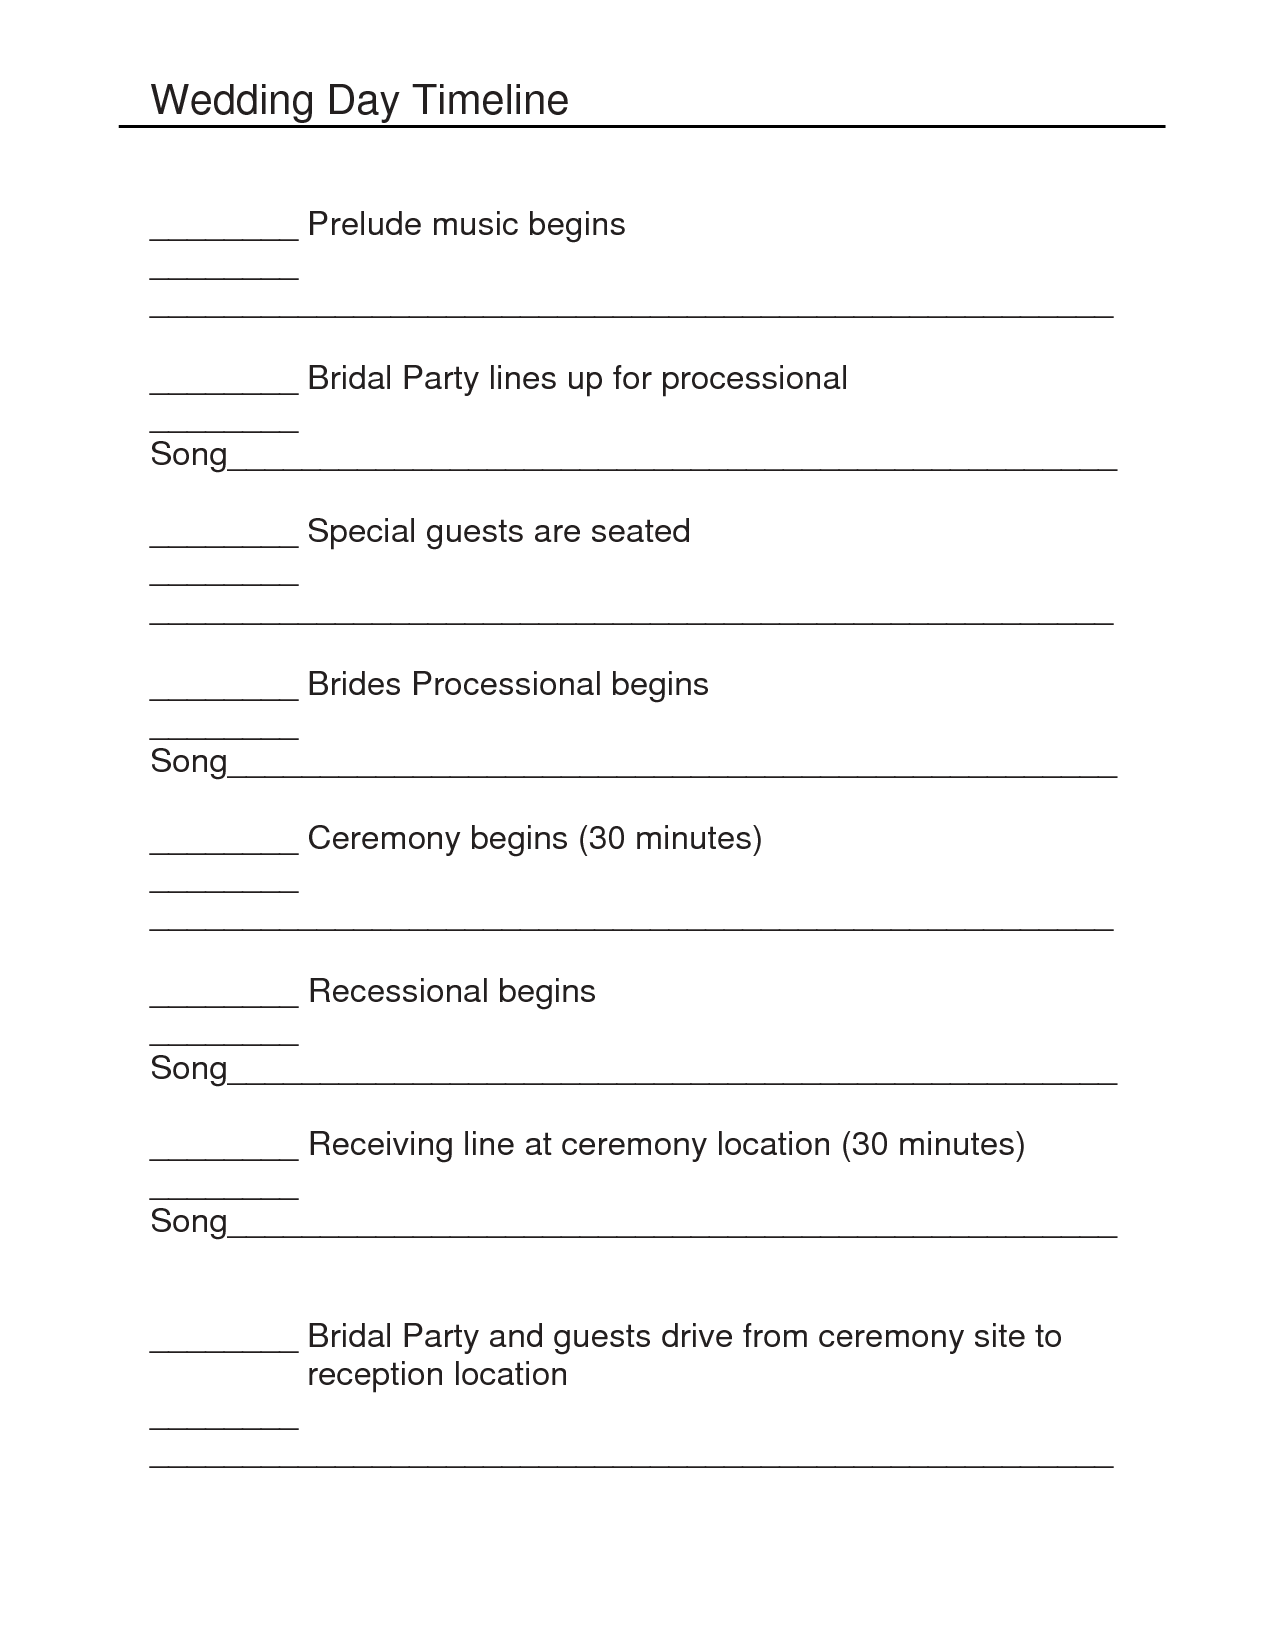 Worksheets Wedding Day Timeline Worksheet outline for formal wedding itinerary day timeline timeline